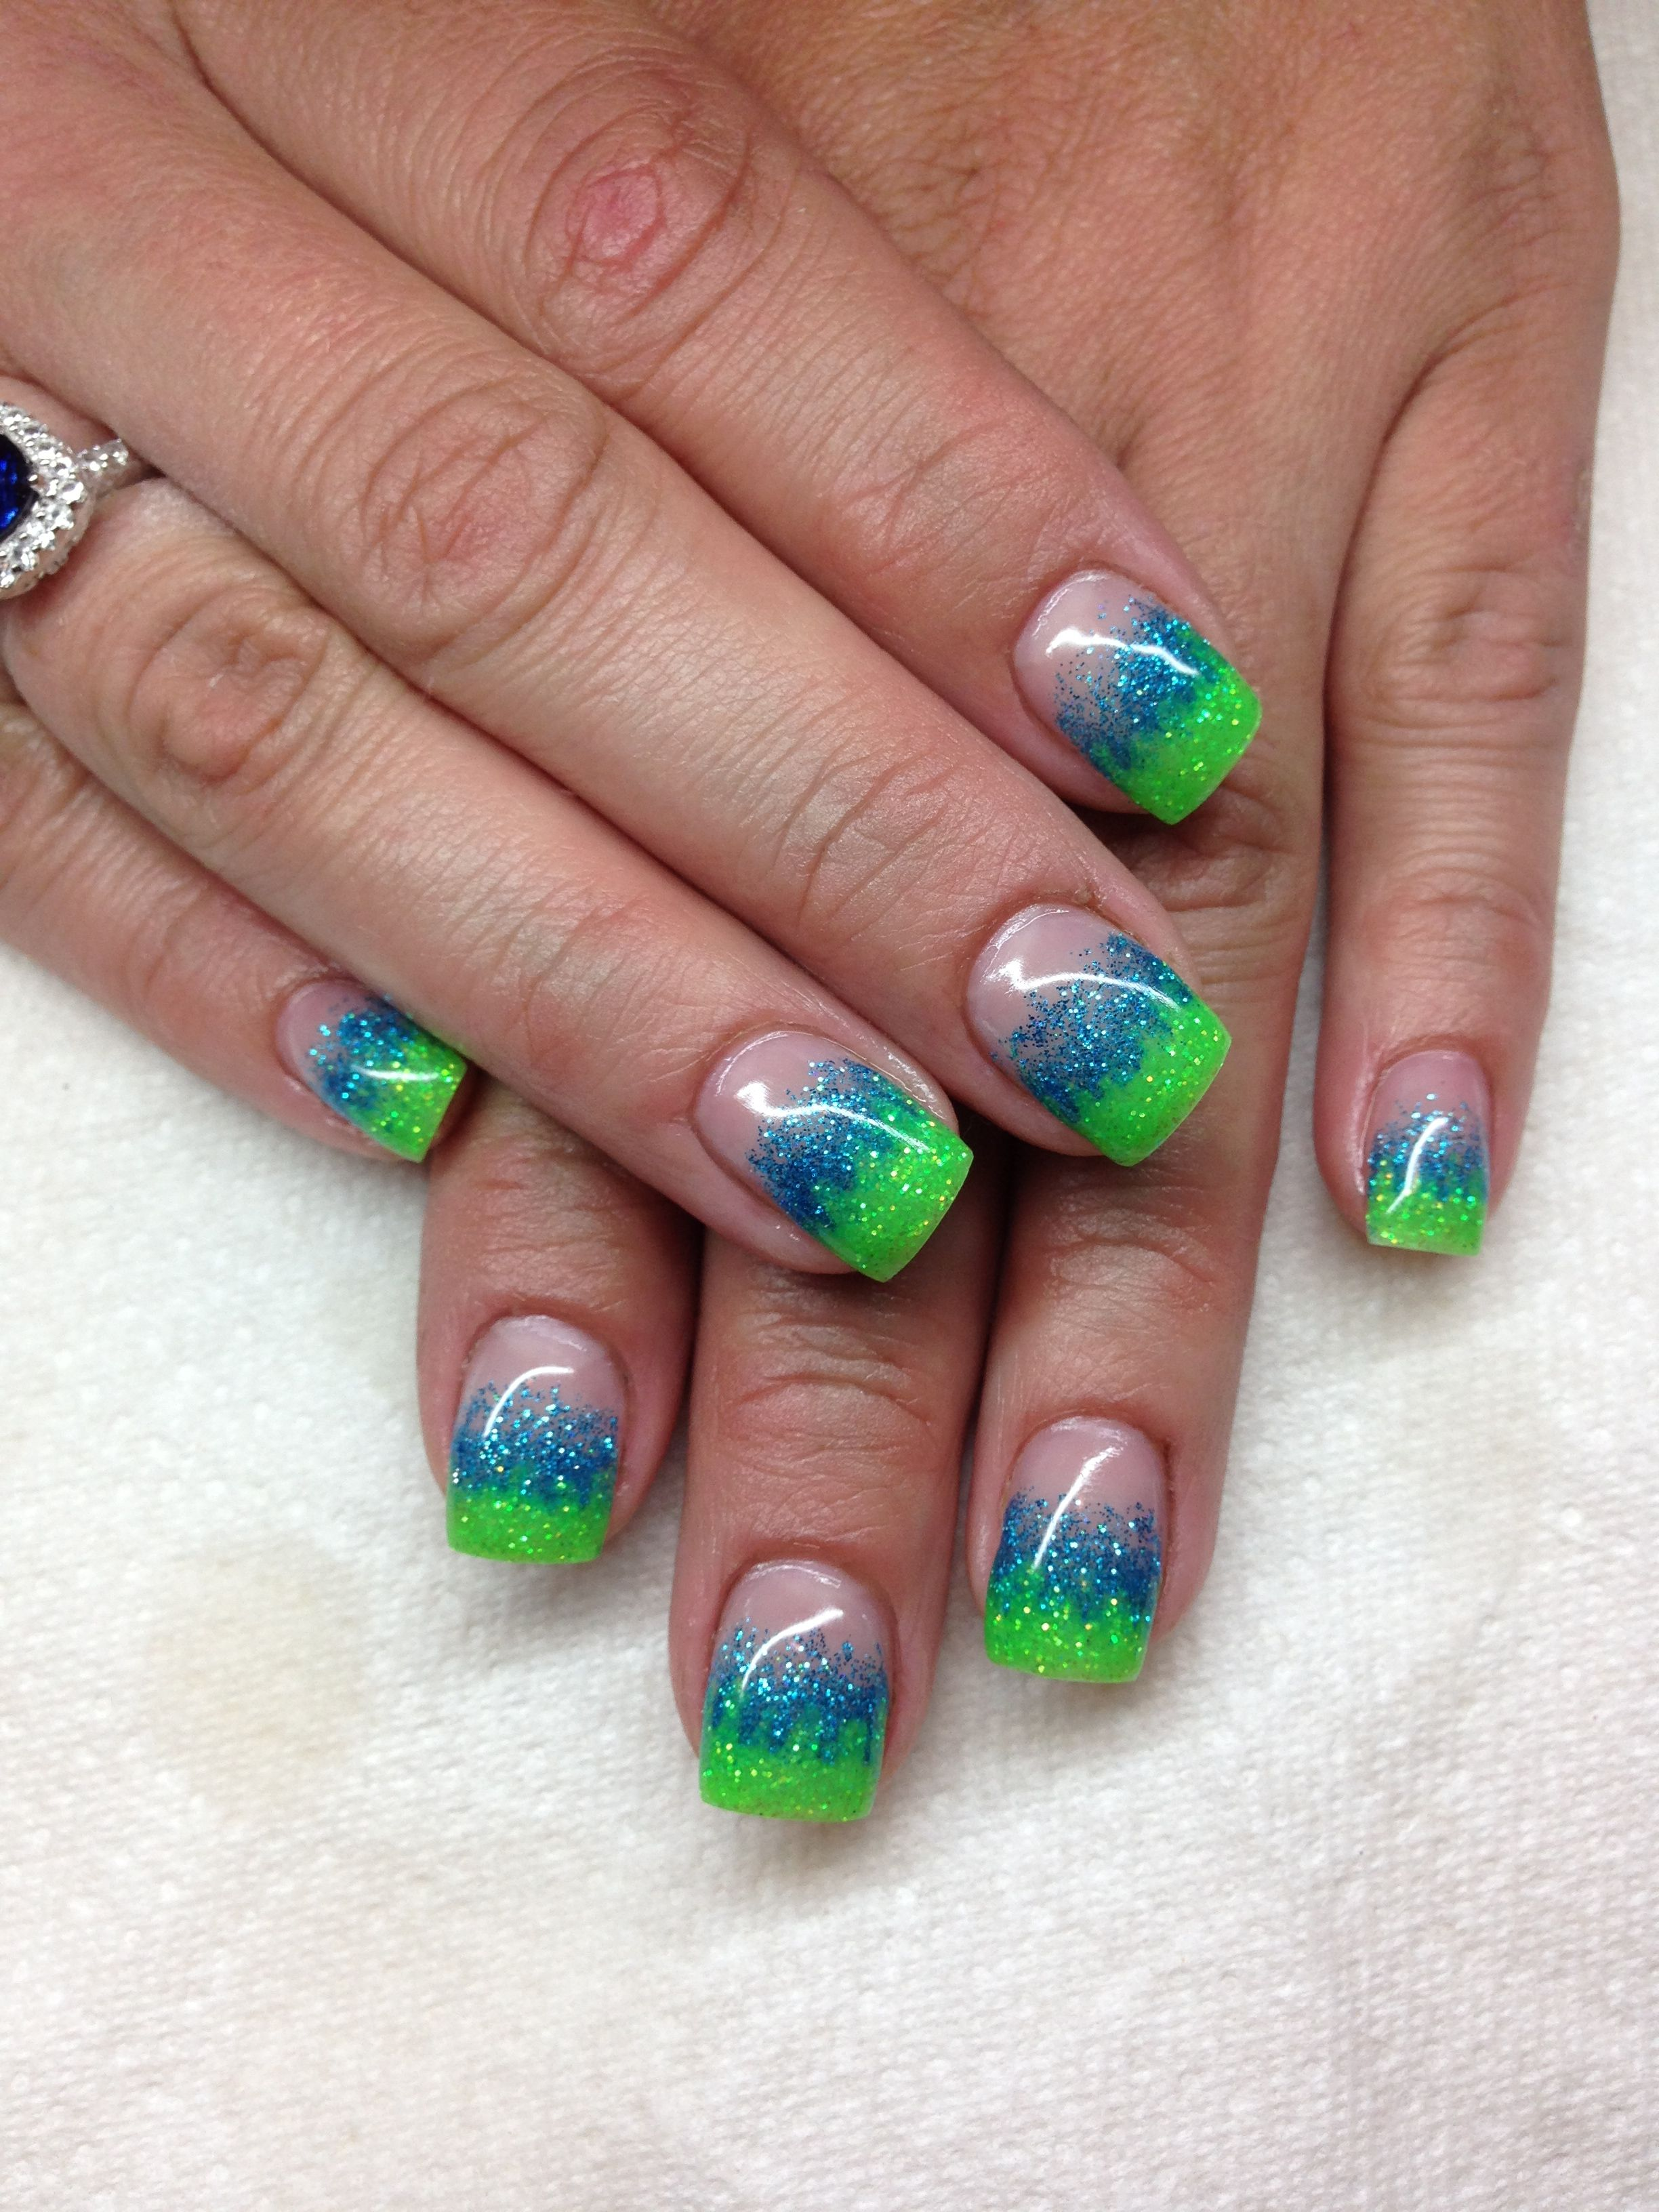 Gel nails By Melissa Fox | Nails and feet | Pinterest